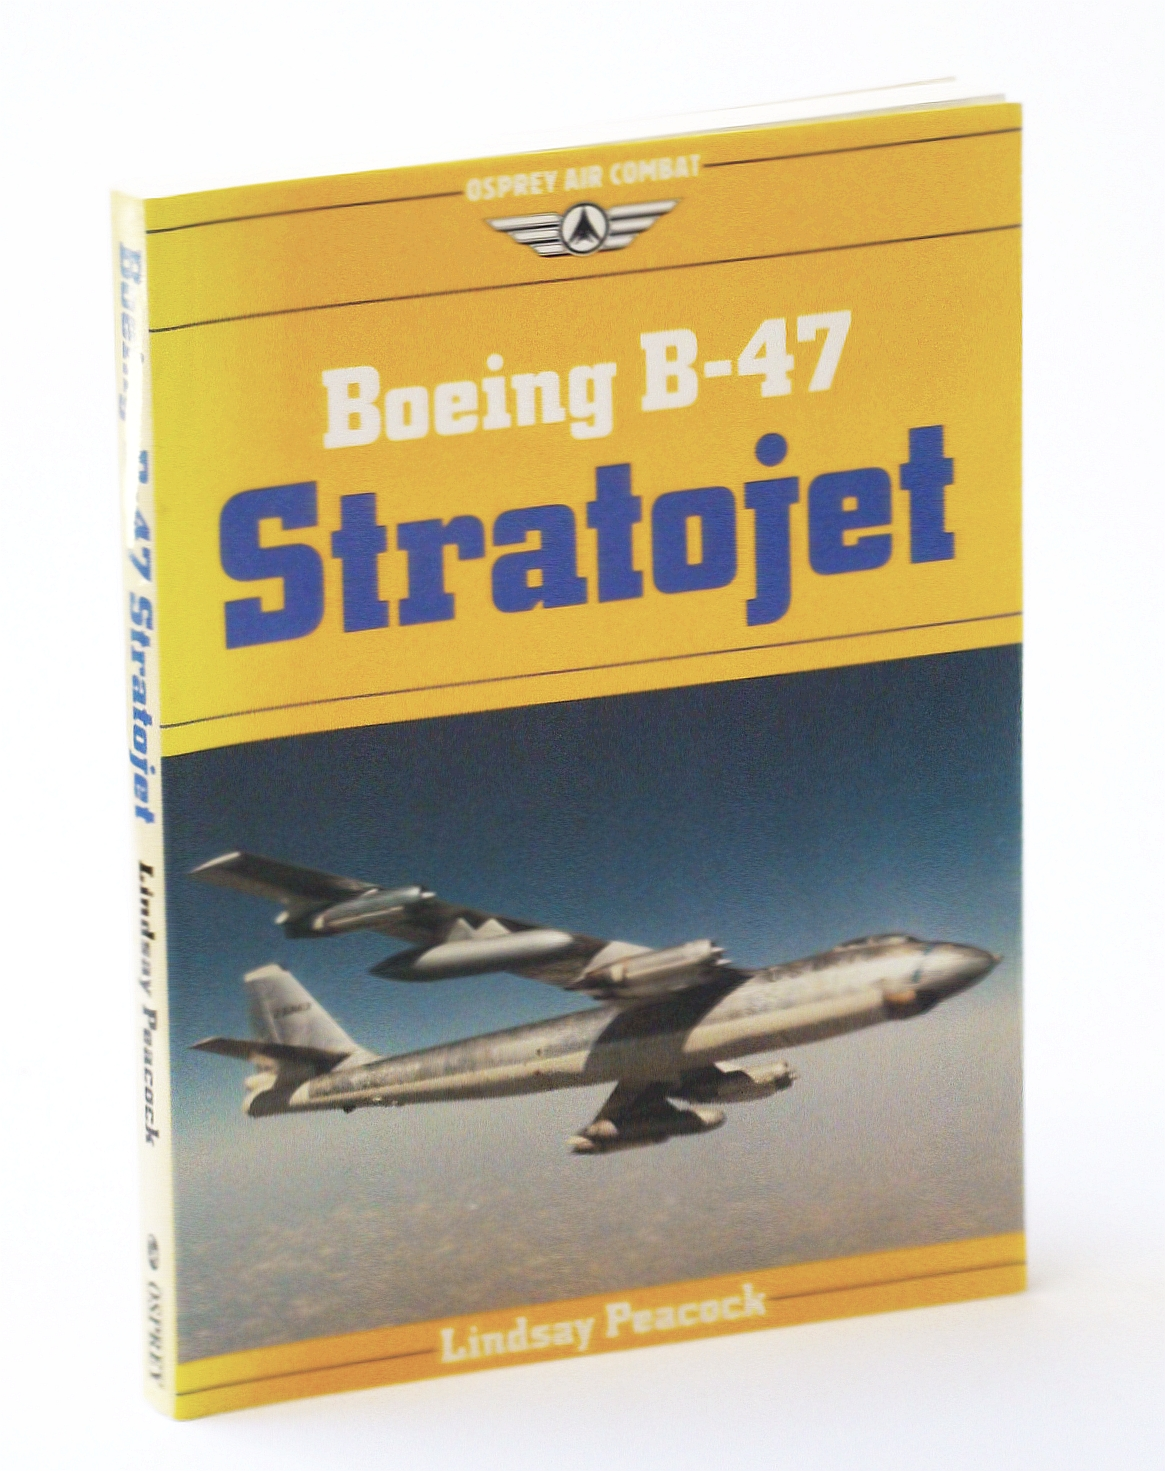 Image for Boeing B-47 Stratojet (Osprey Air Combat Series)